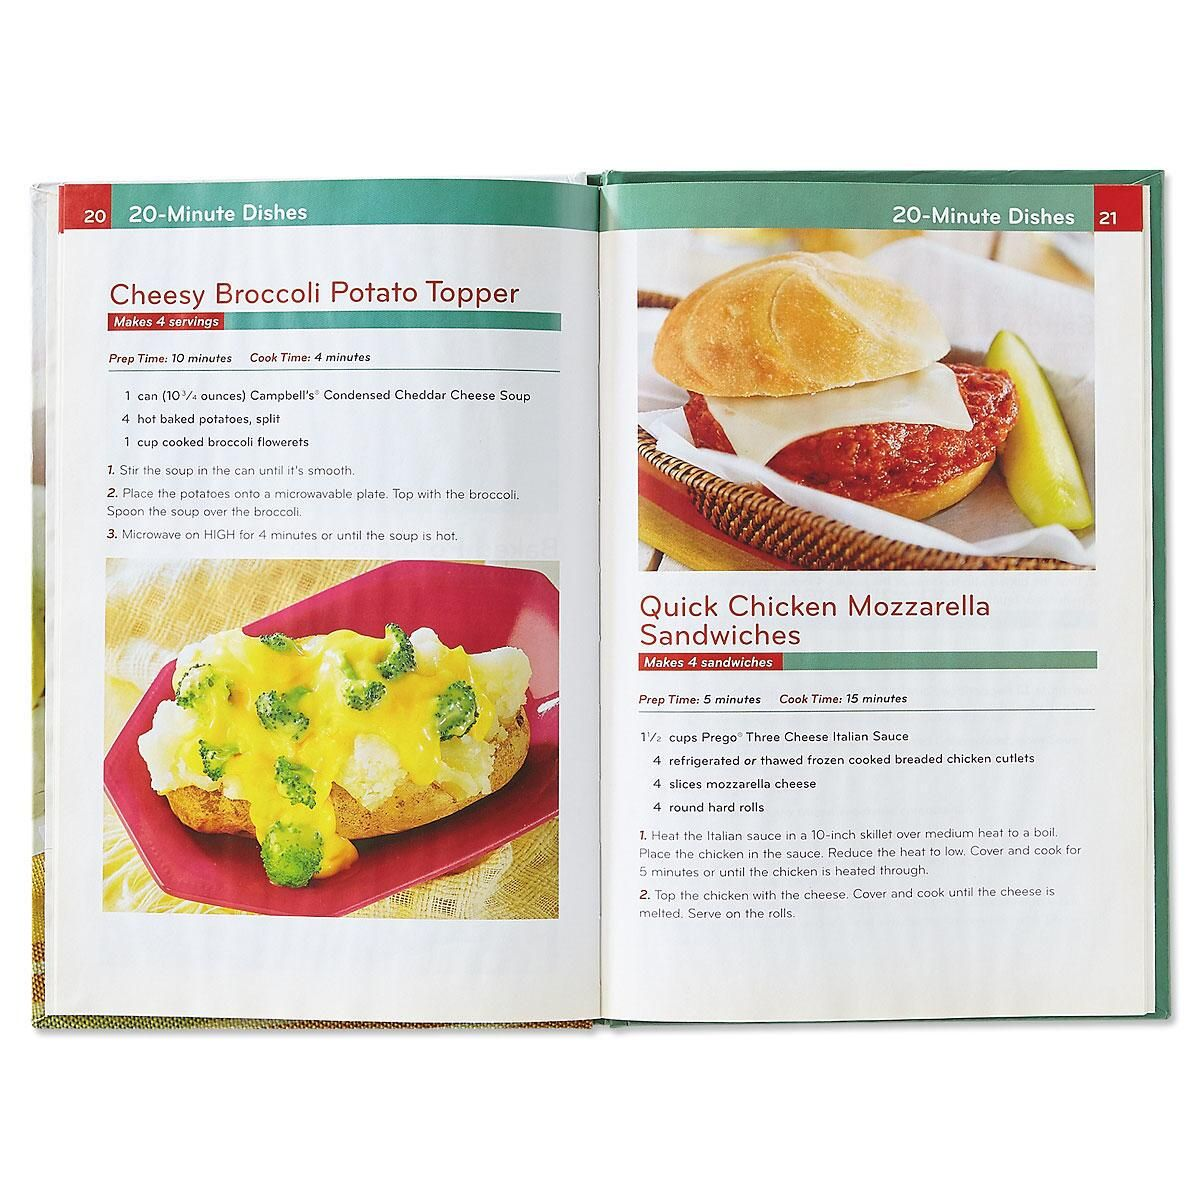 20-Minute Dishes Cookbook